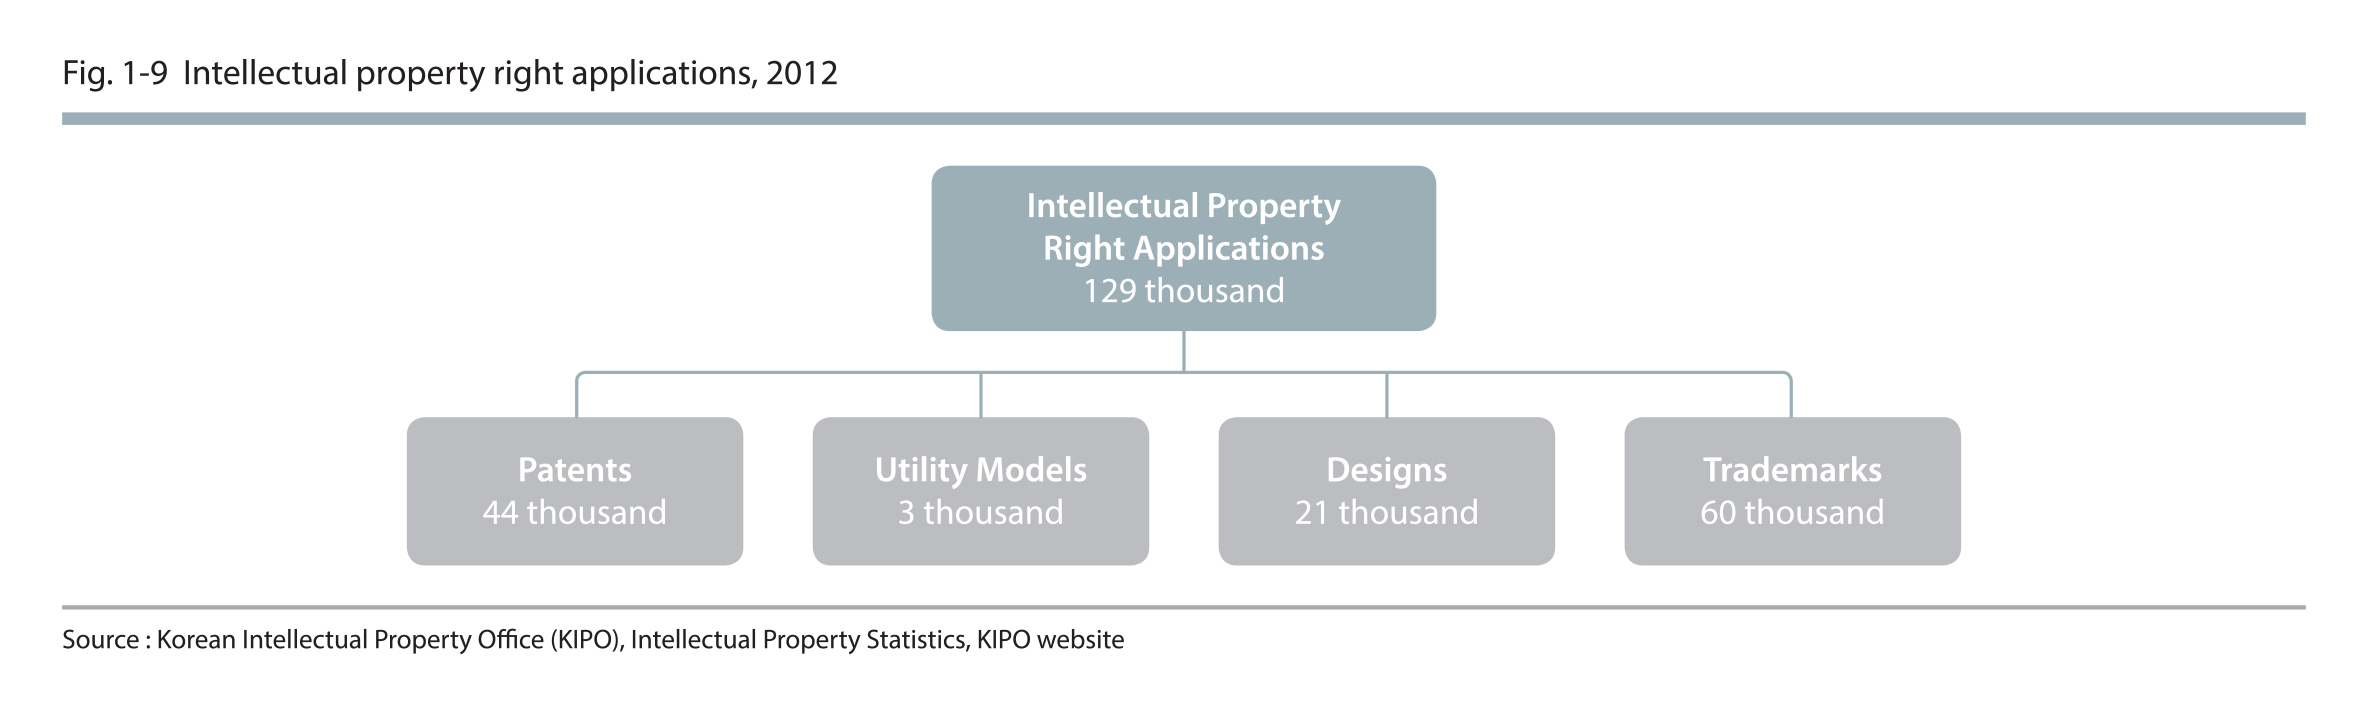 Intellectual property right applications, 2012